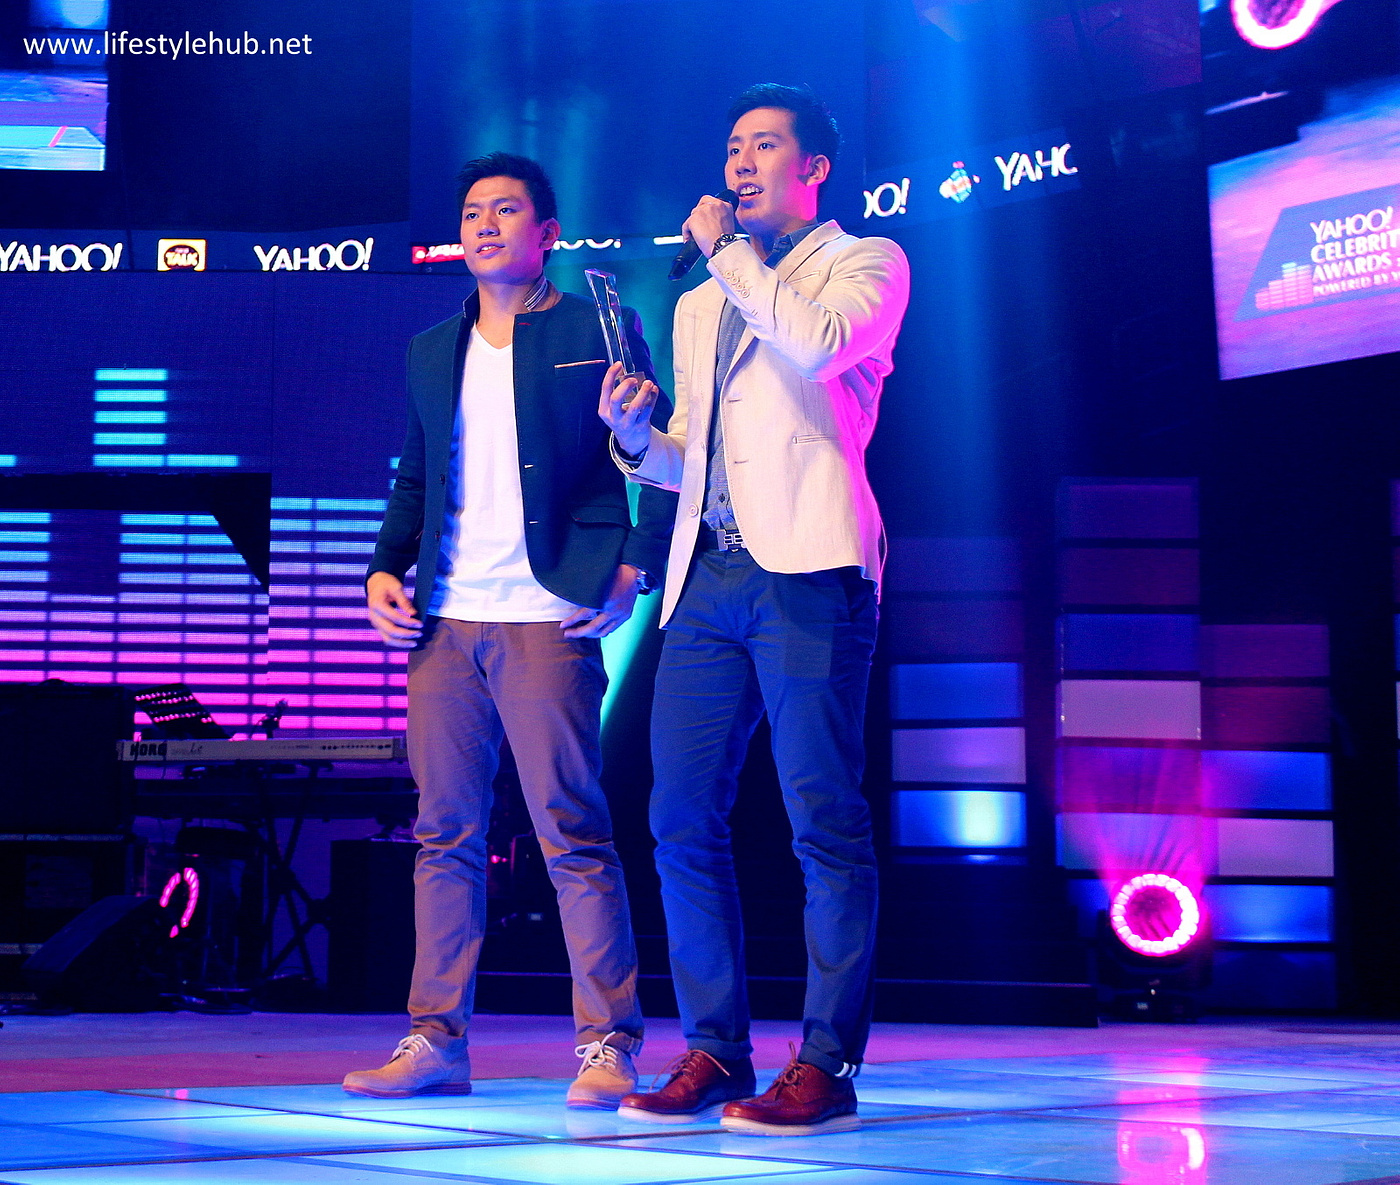 jeric and jeron teng male hotlethe yahoo awards